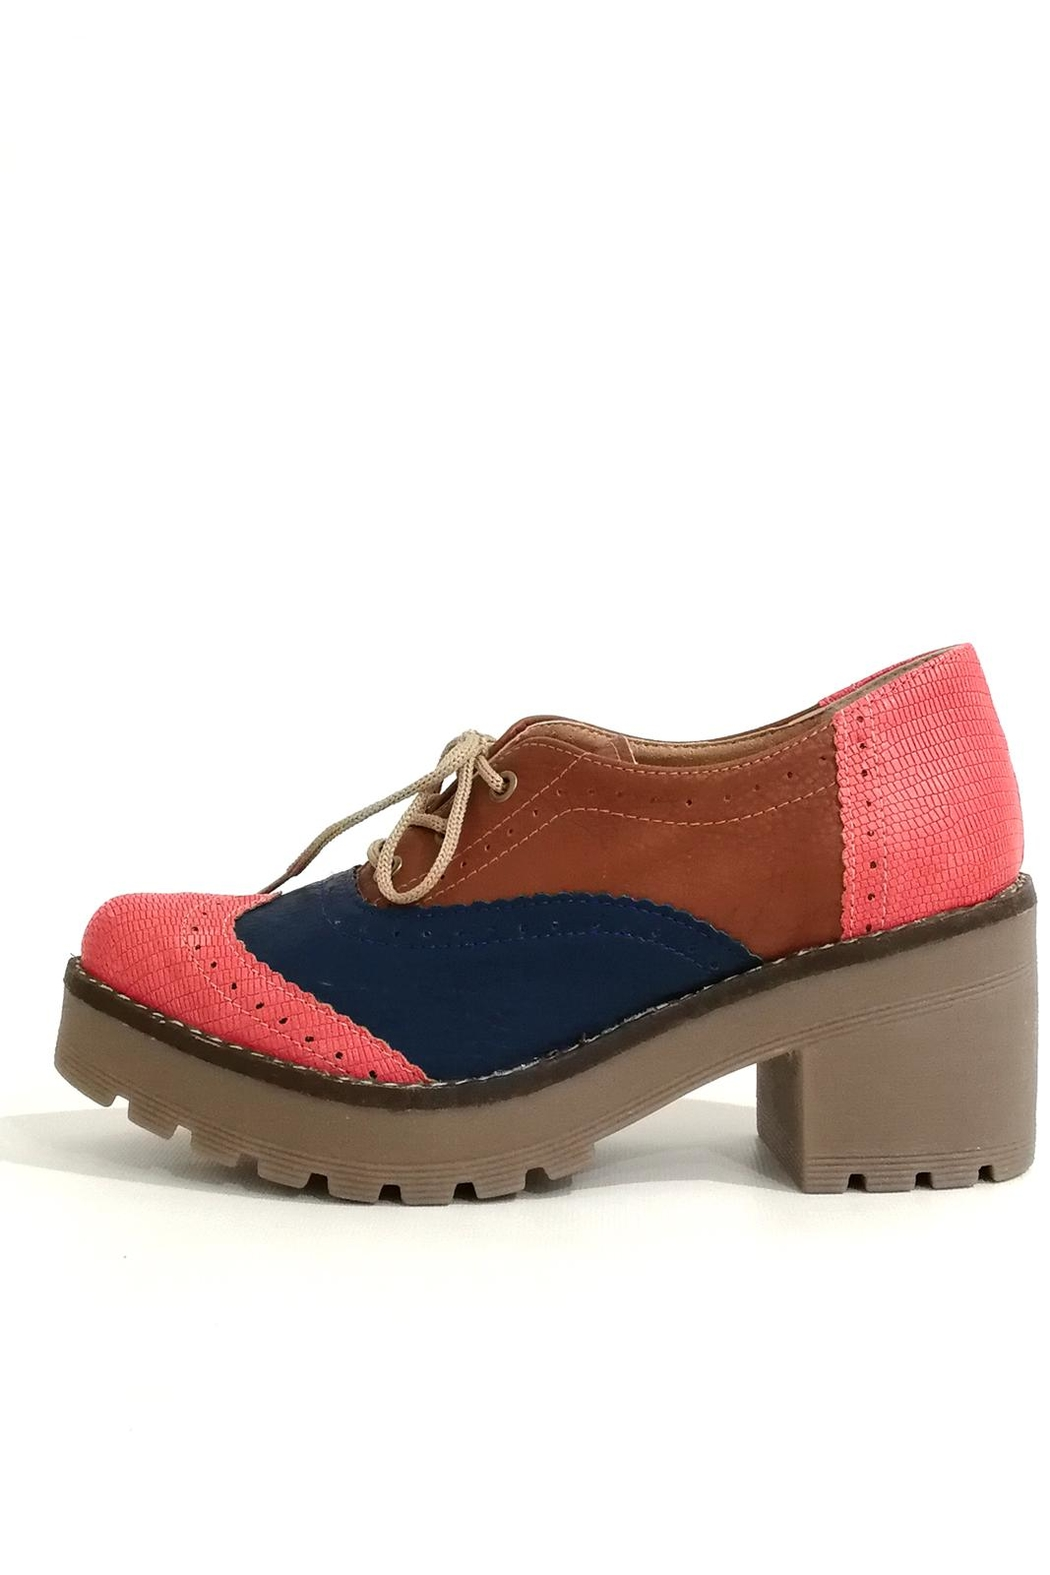 MIYE COLLAZZO Hope Pink Shoes - Front Full Image